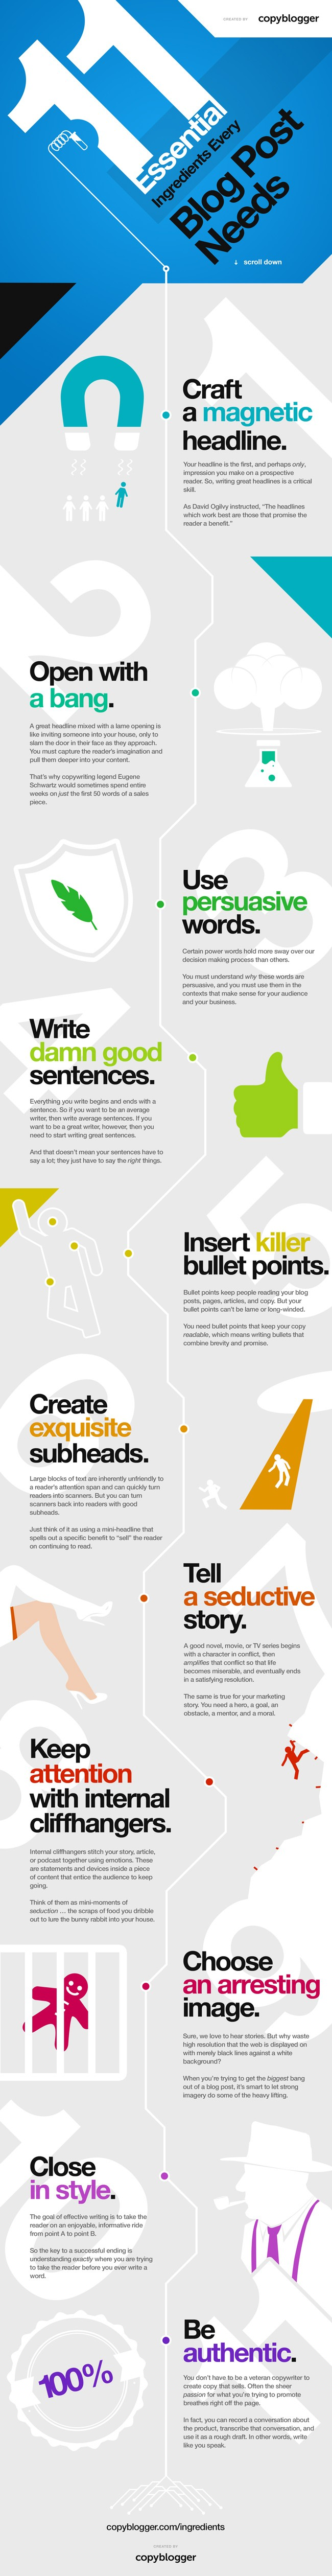 essential-blogpost-ingredients-infographic.jpg